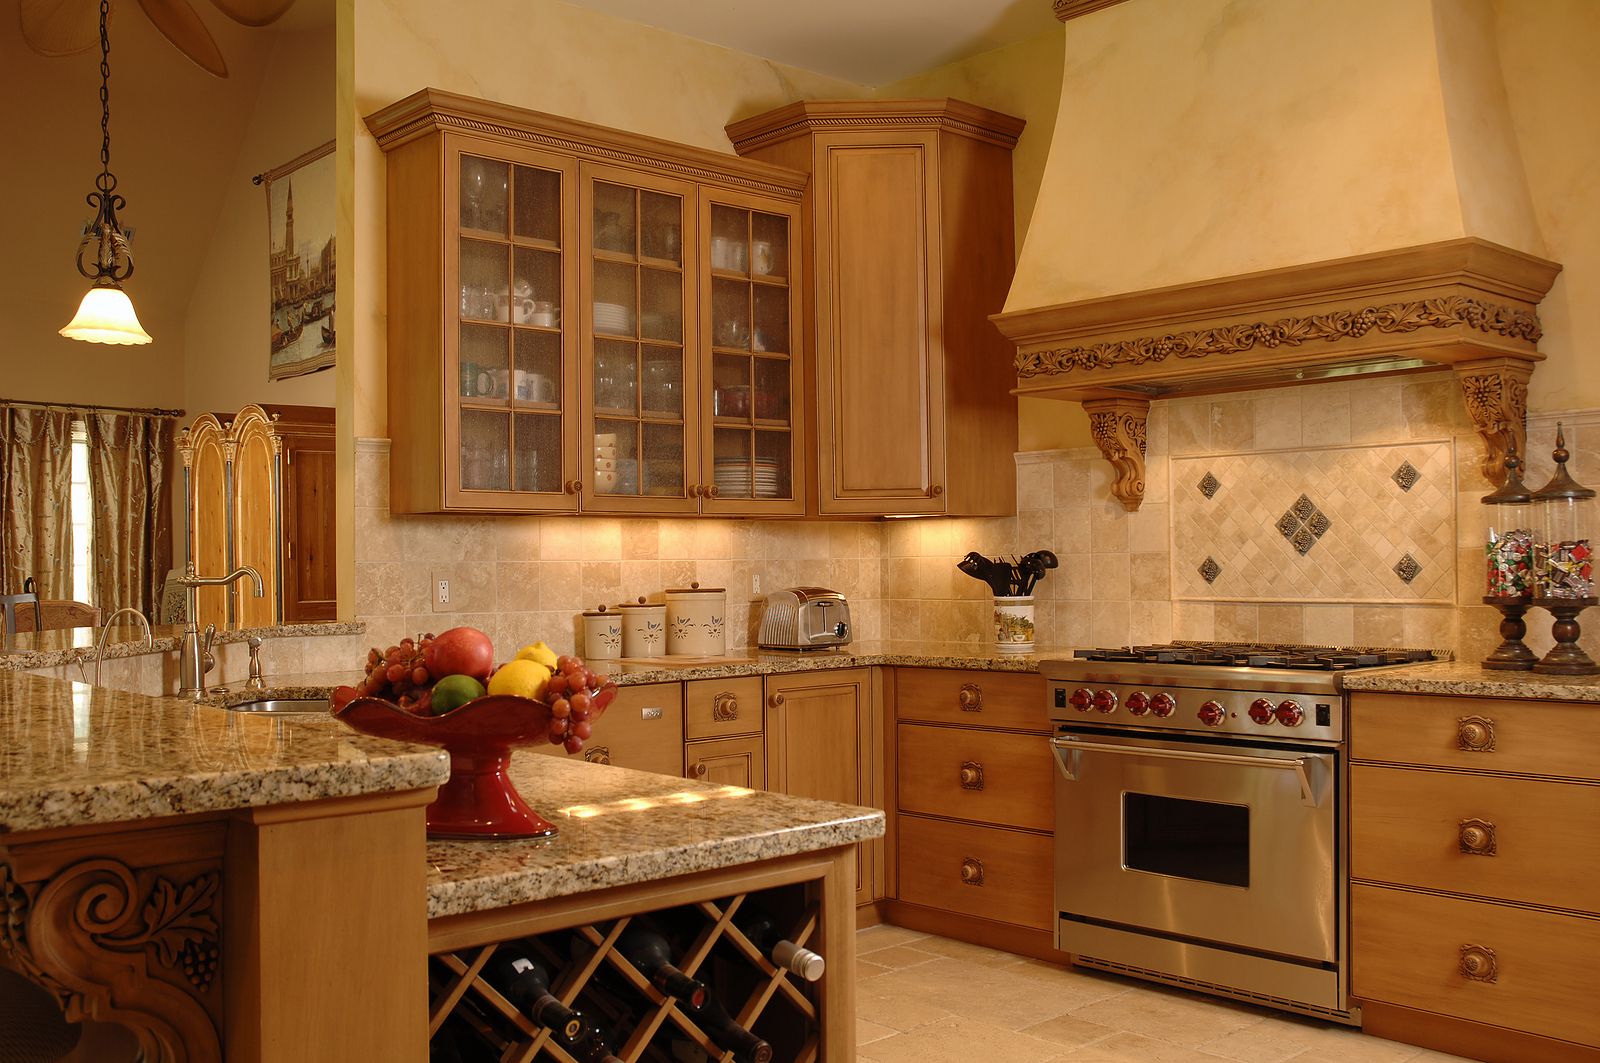 Kitchen Tile Designs Cool Of Italian Kitchen Design Ideas Pictures